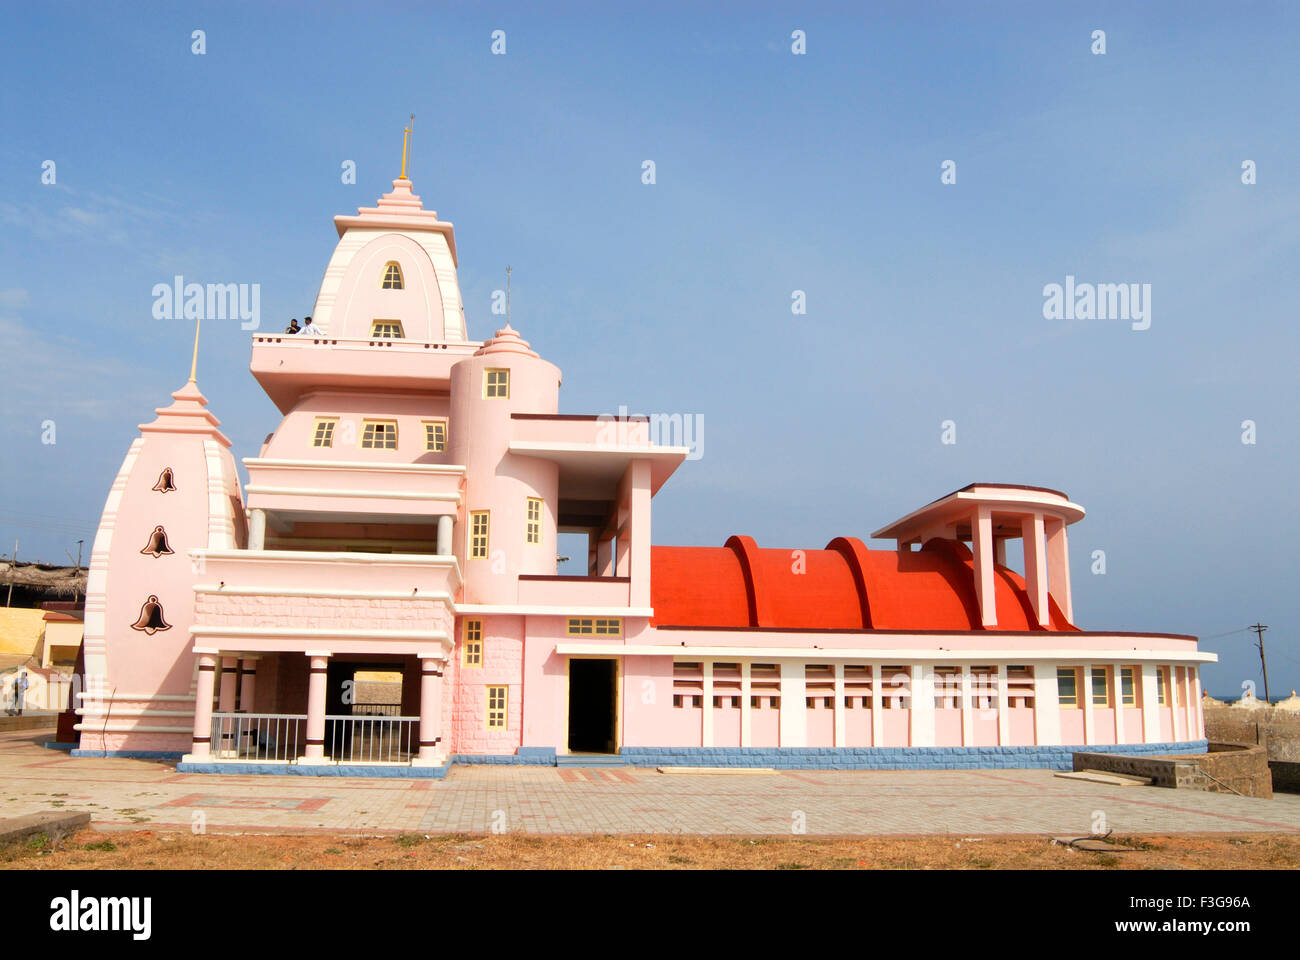 Gandhi Memorial established in 1956 (height 79 feet) ; Kanyakumari ; Tamil Nadu ; India Stock Photo